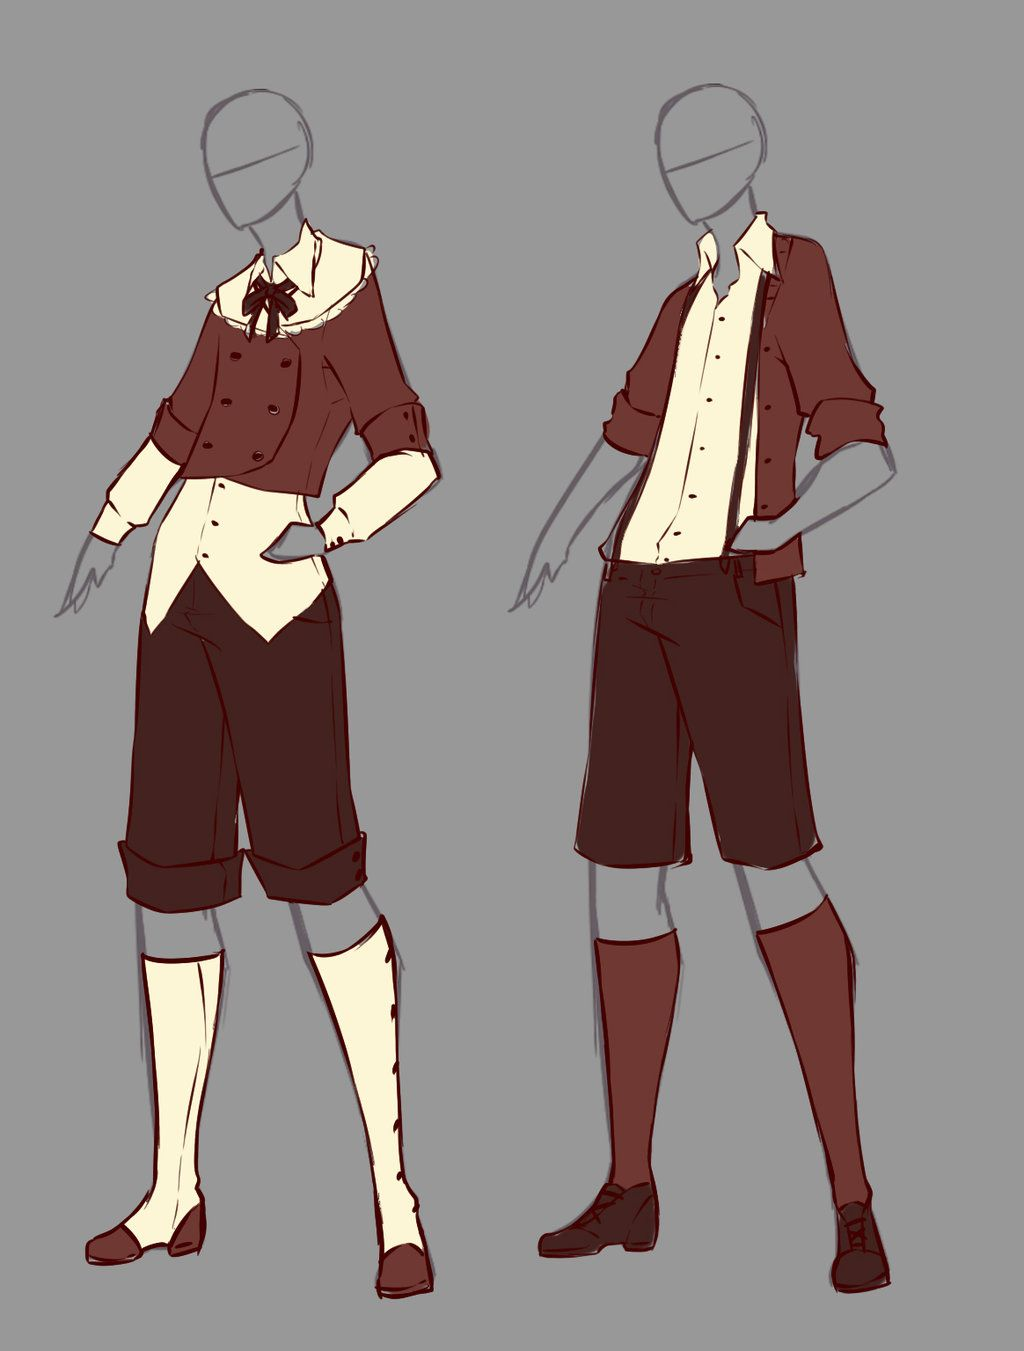 clothes / outfits | Fantasy clothing, Art clothes, Anime ...